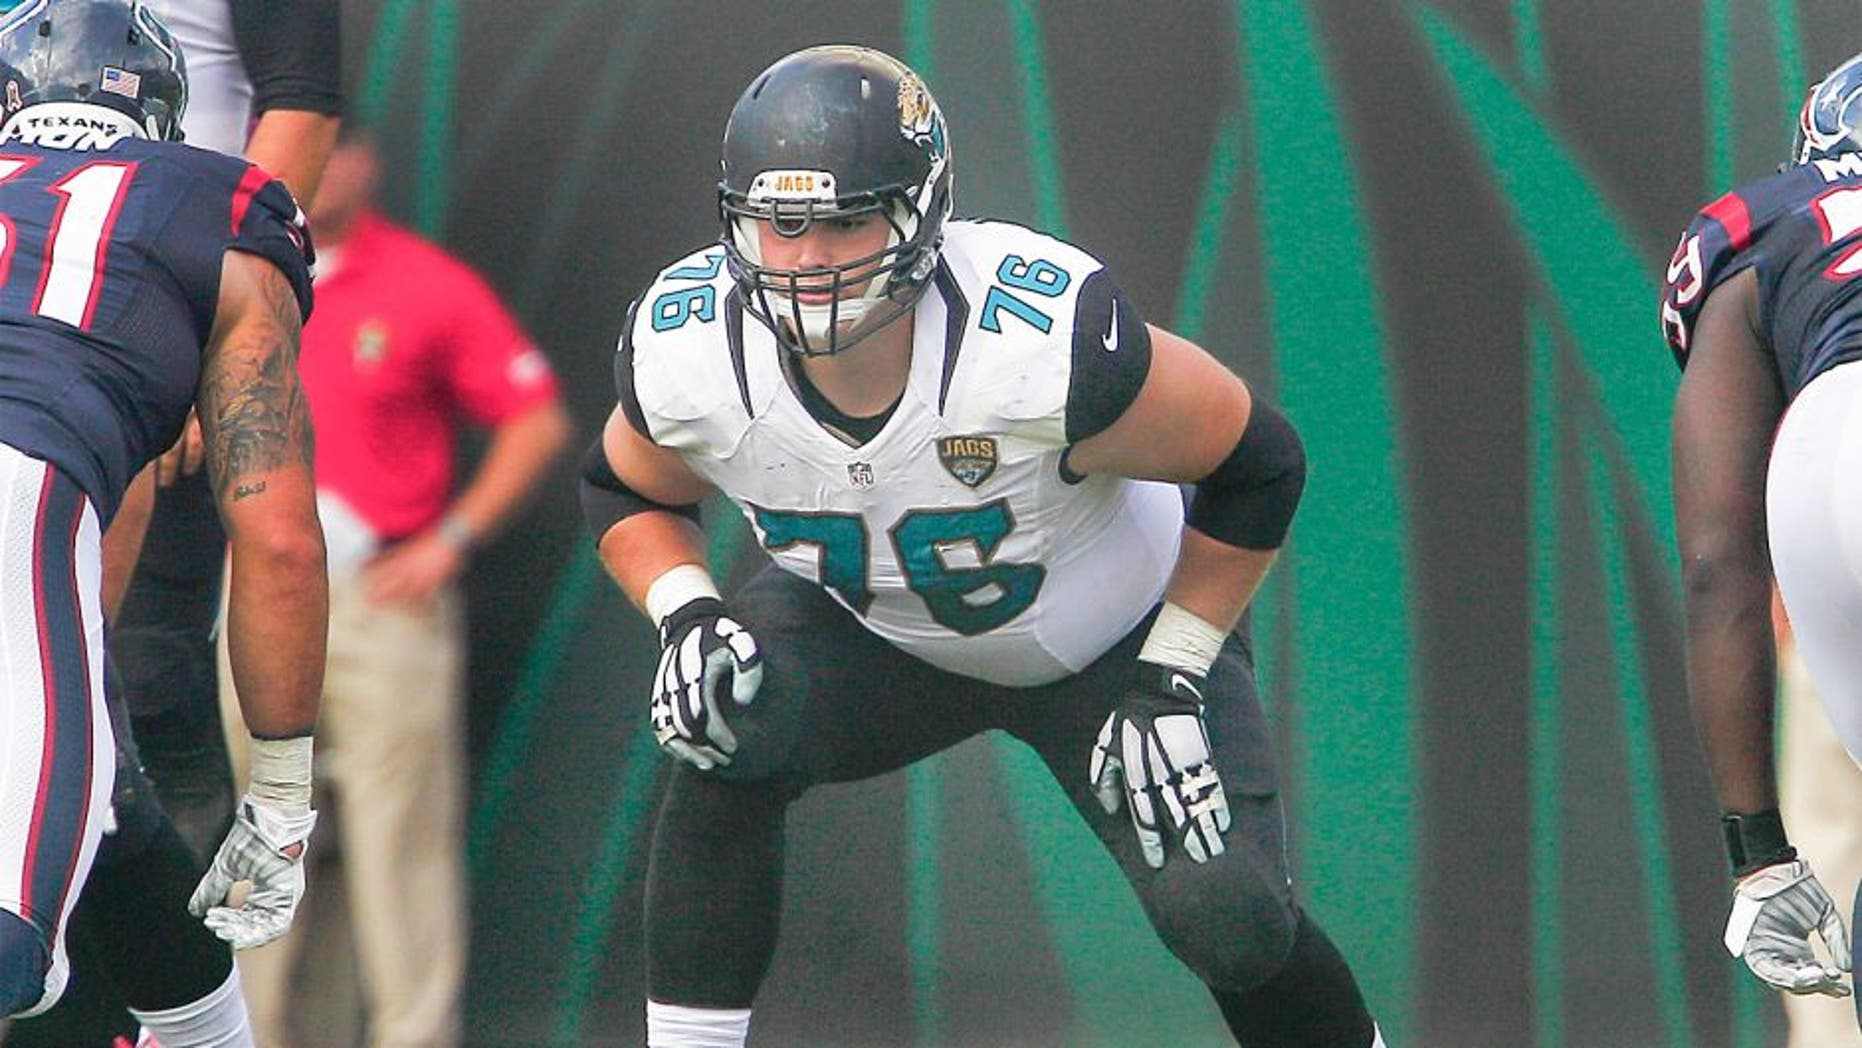 Oct 18, 2015; Jacksonville, FL, USA; Jacksonville Jaguars tackle Luke Joeckel (76) lines up during the second half of a football game against the Houston Texans at EverBank Field. Mandatory Credit: Reinhold Matay-USA TODAY Sports